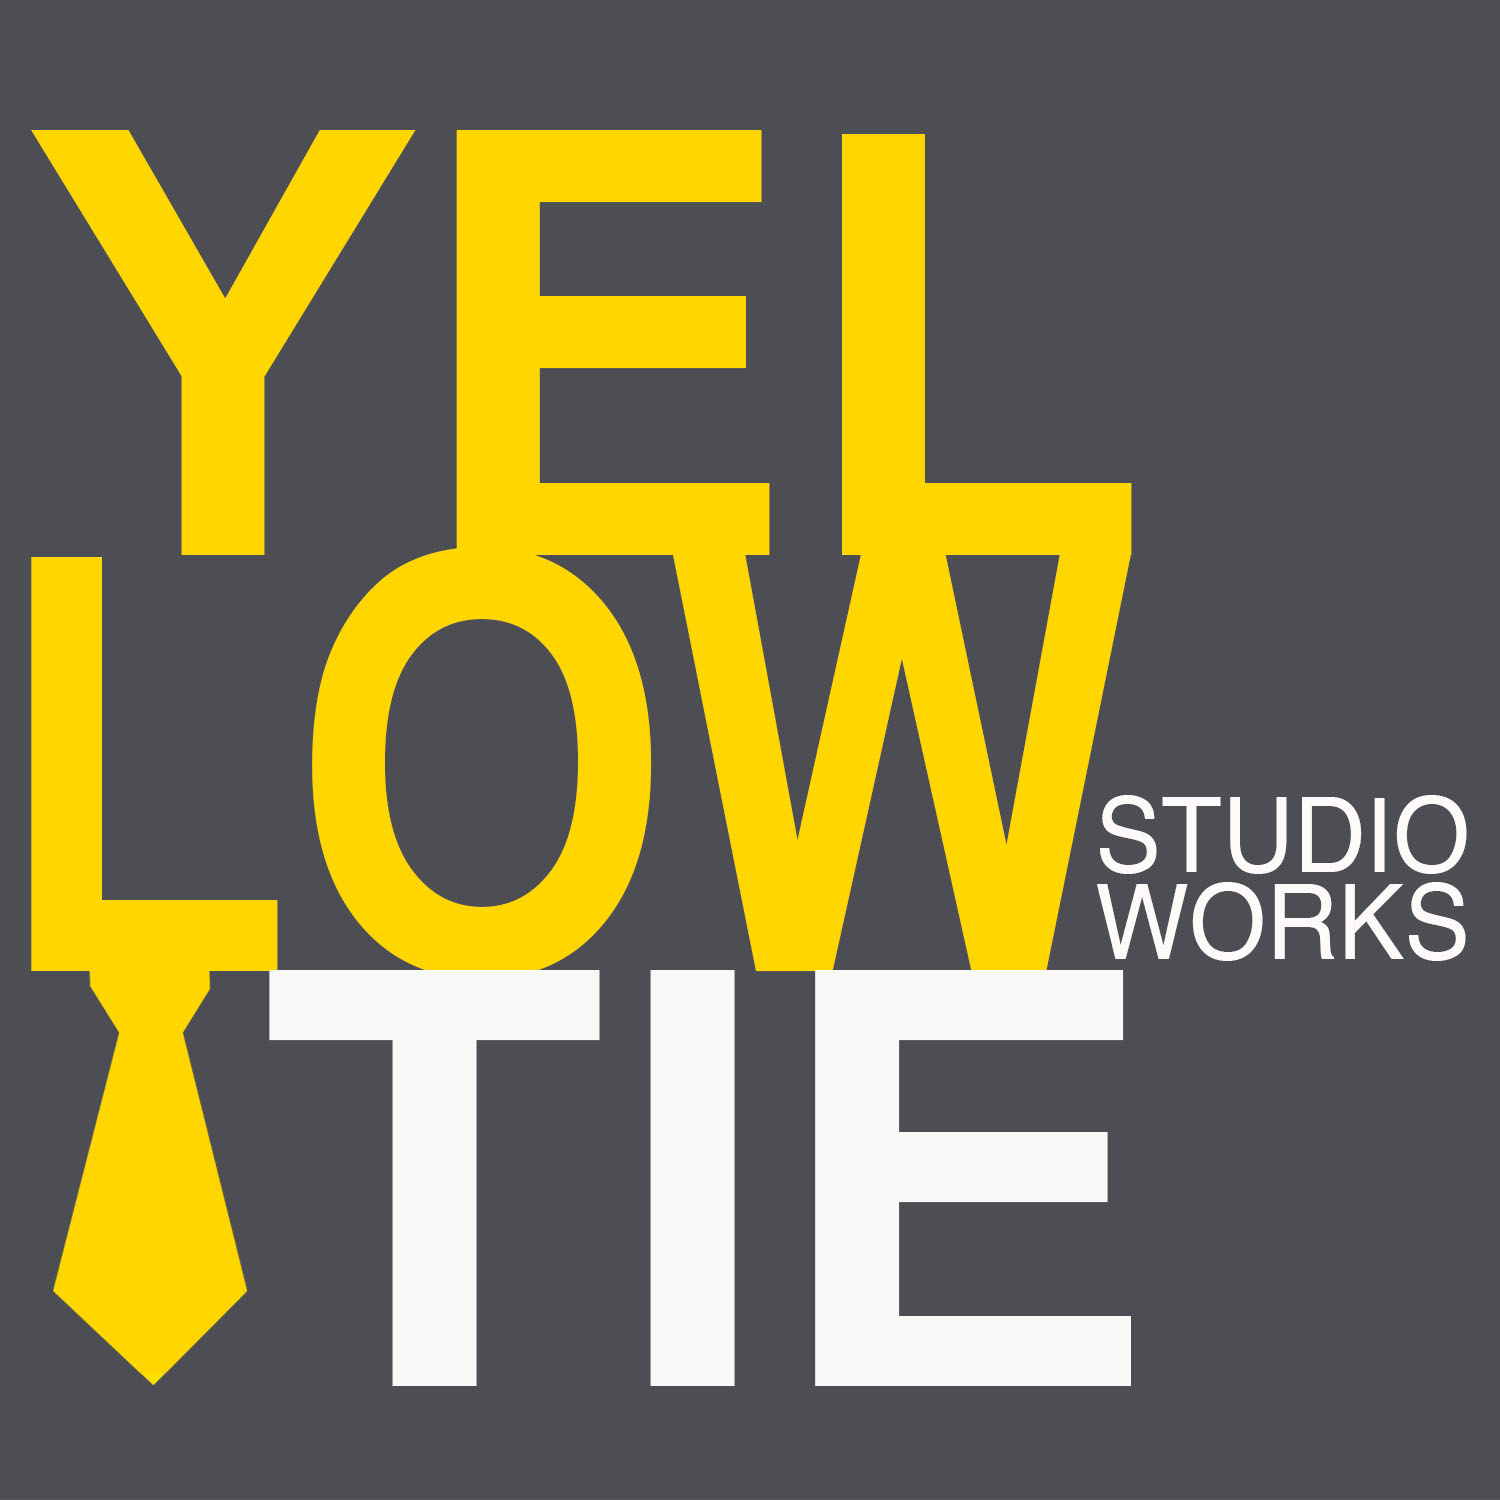 Yellow Tie Studio Works